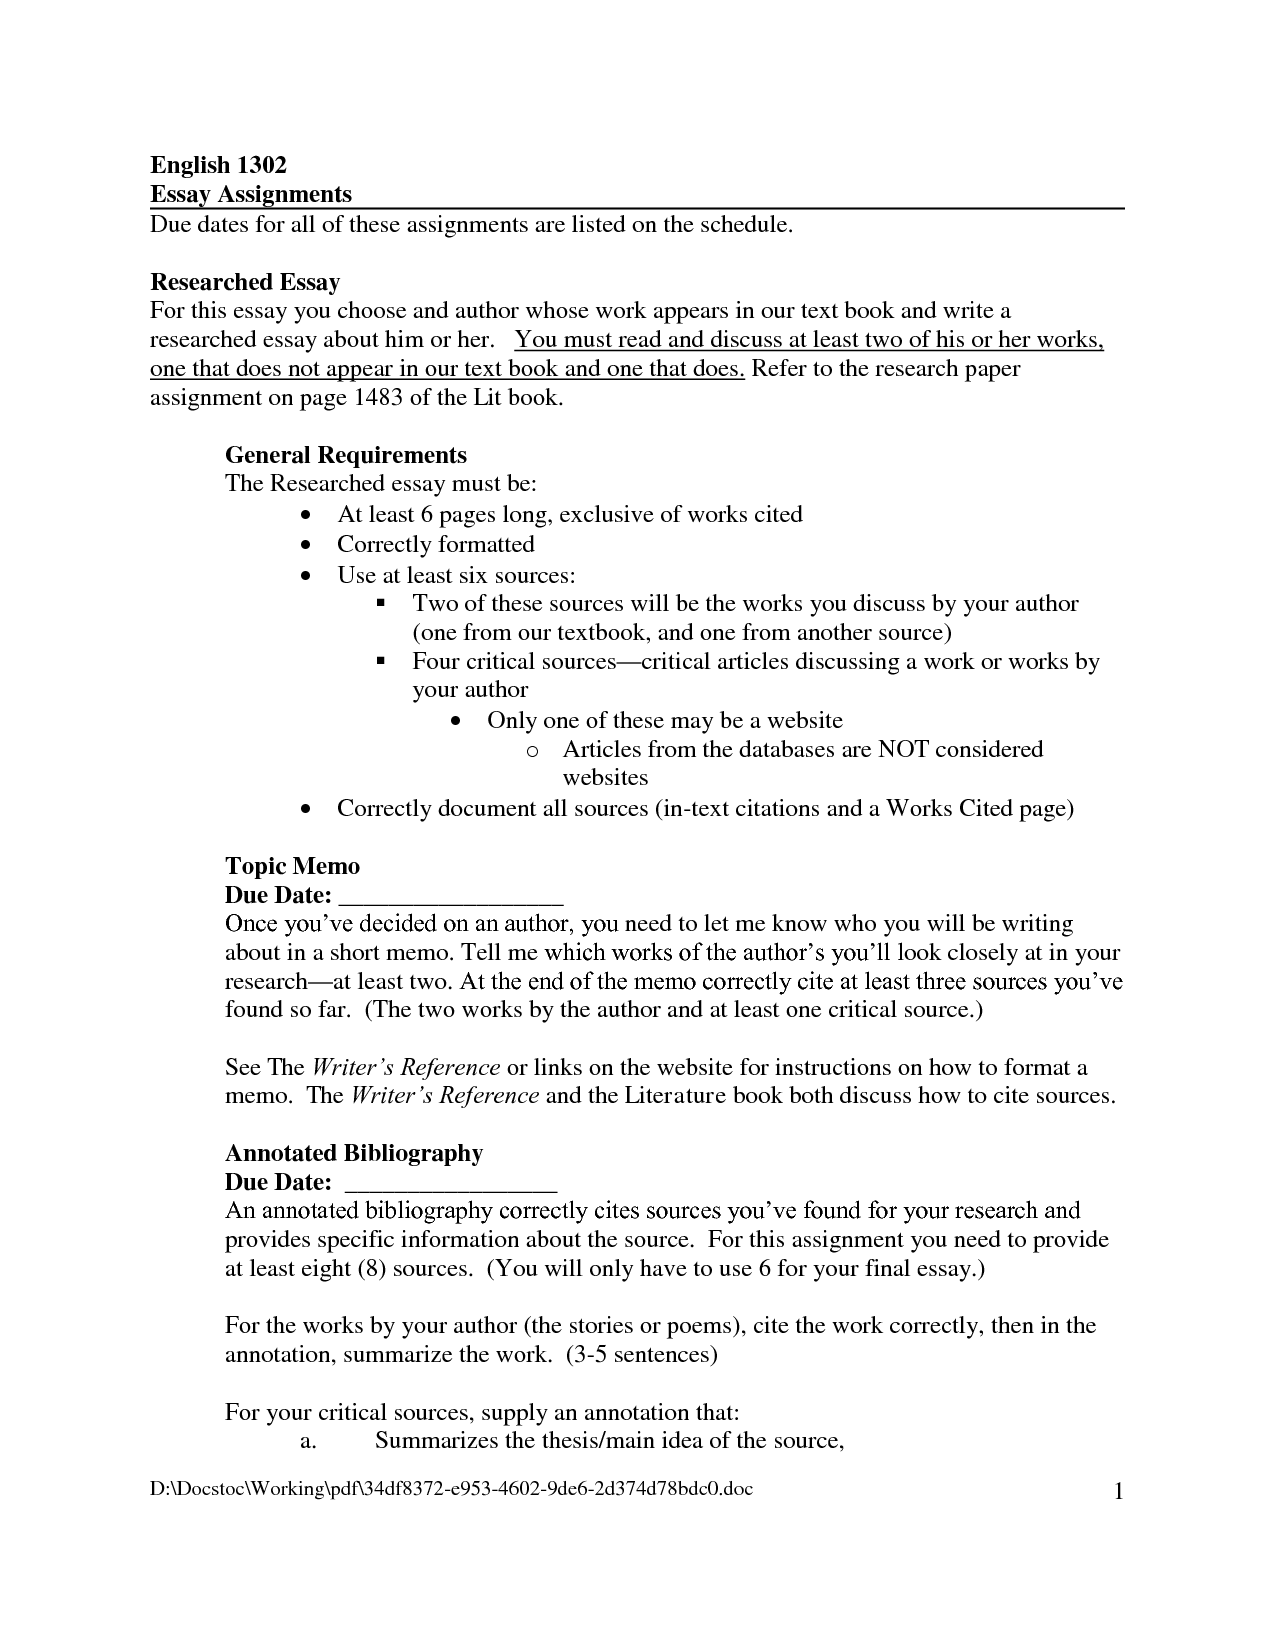 World Trade Center Essay  Should Students Wear Uniform To School Essay also Utilitarian Essays  Ideas Of Cover Letter Examples Biography Essays Personal  A Compare Contrast Essay